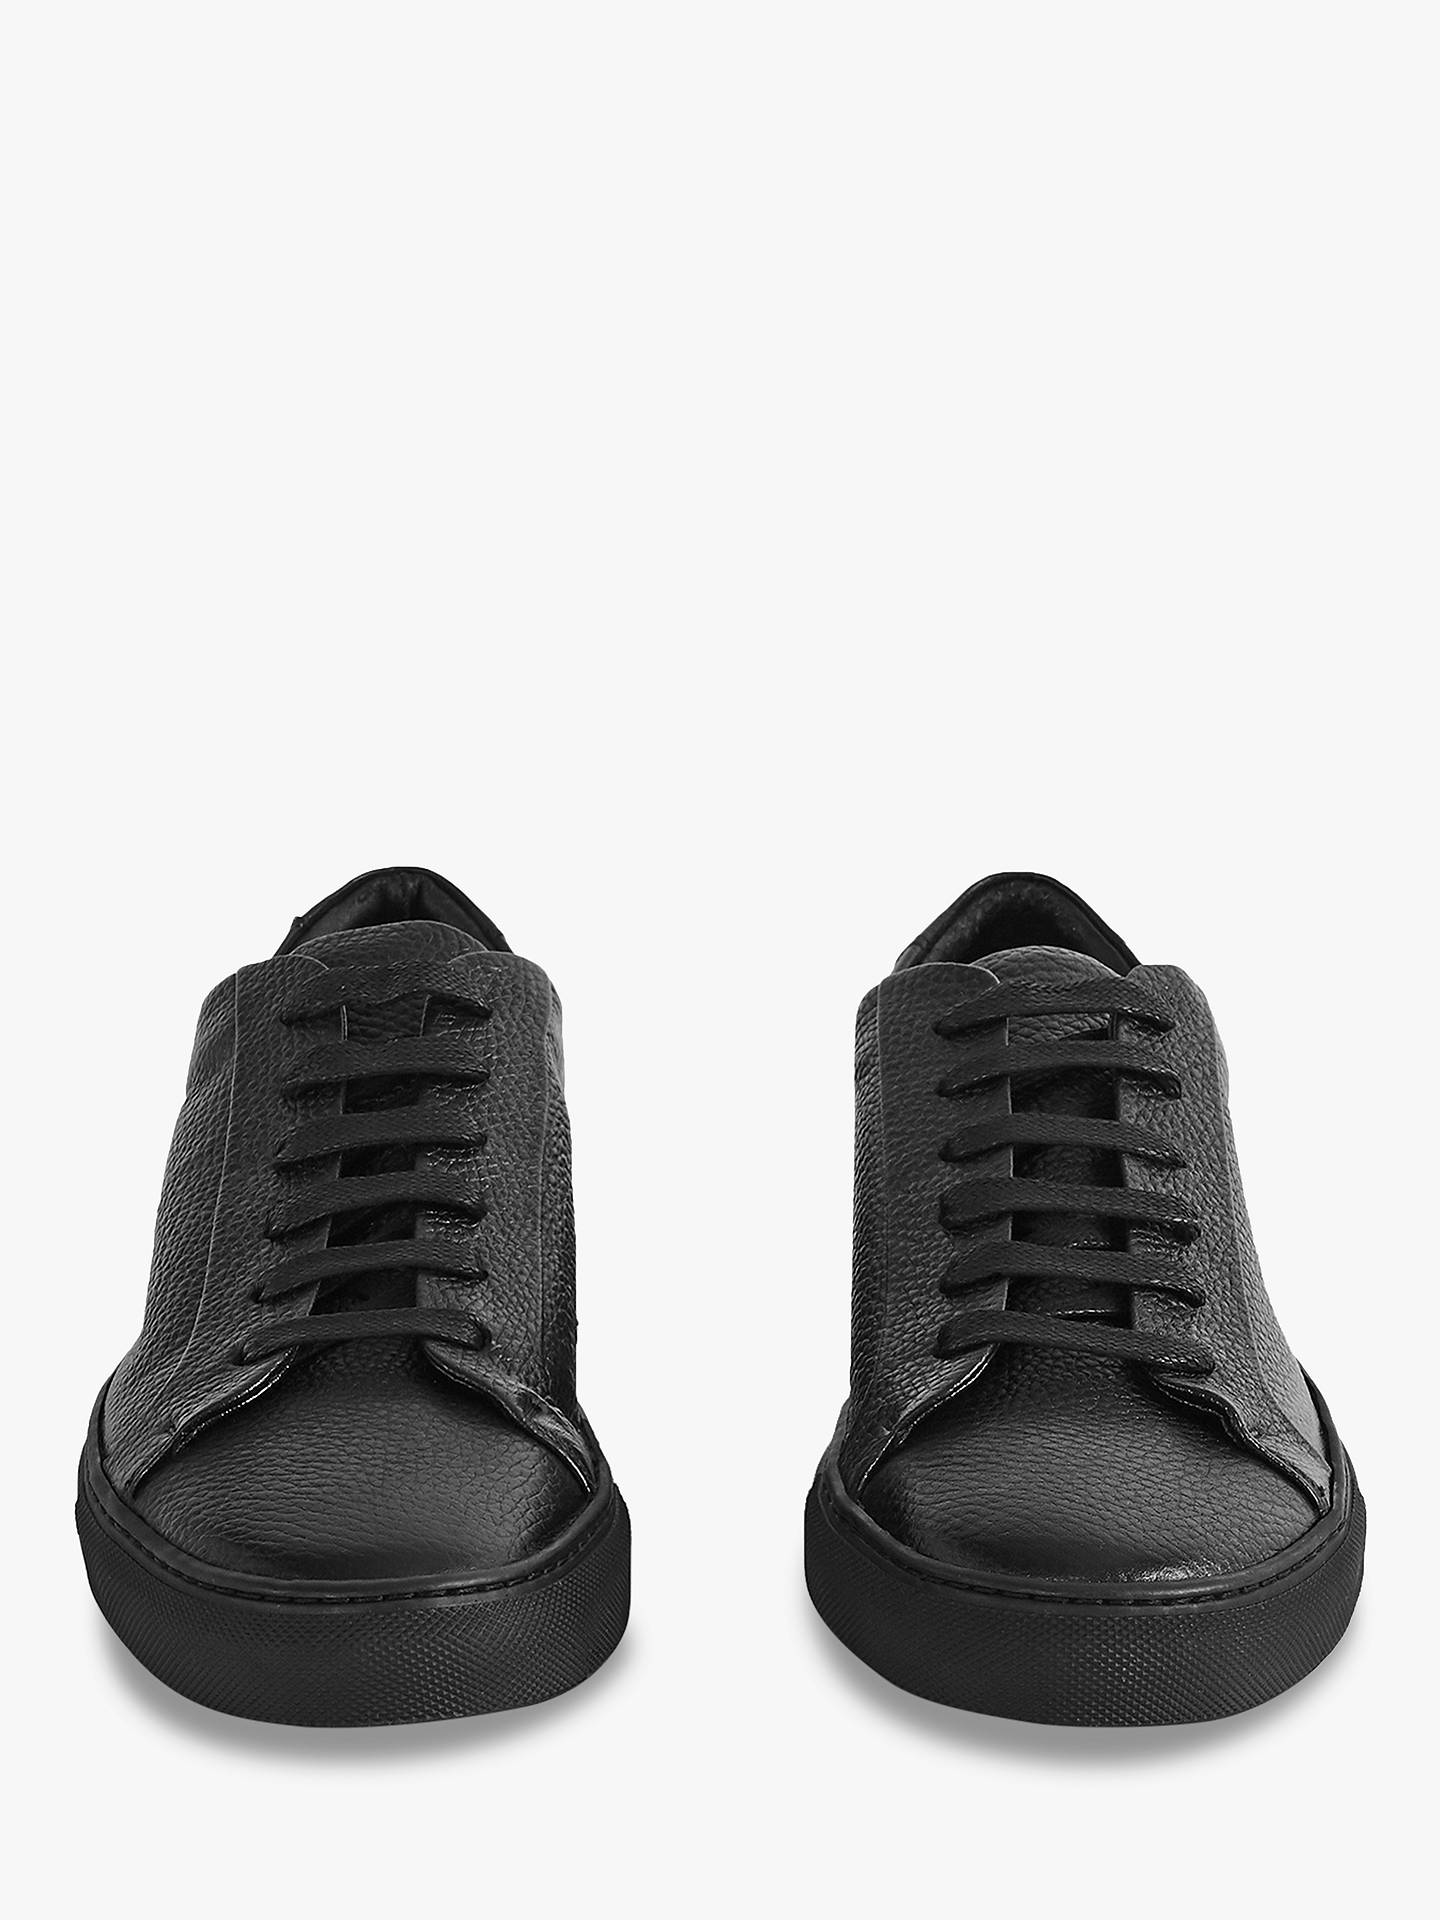 BuyReiss Darren Tumble Pebble Trainers, Black, 7 Online at johnlewis.com